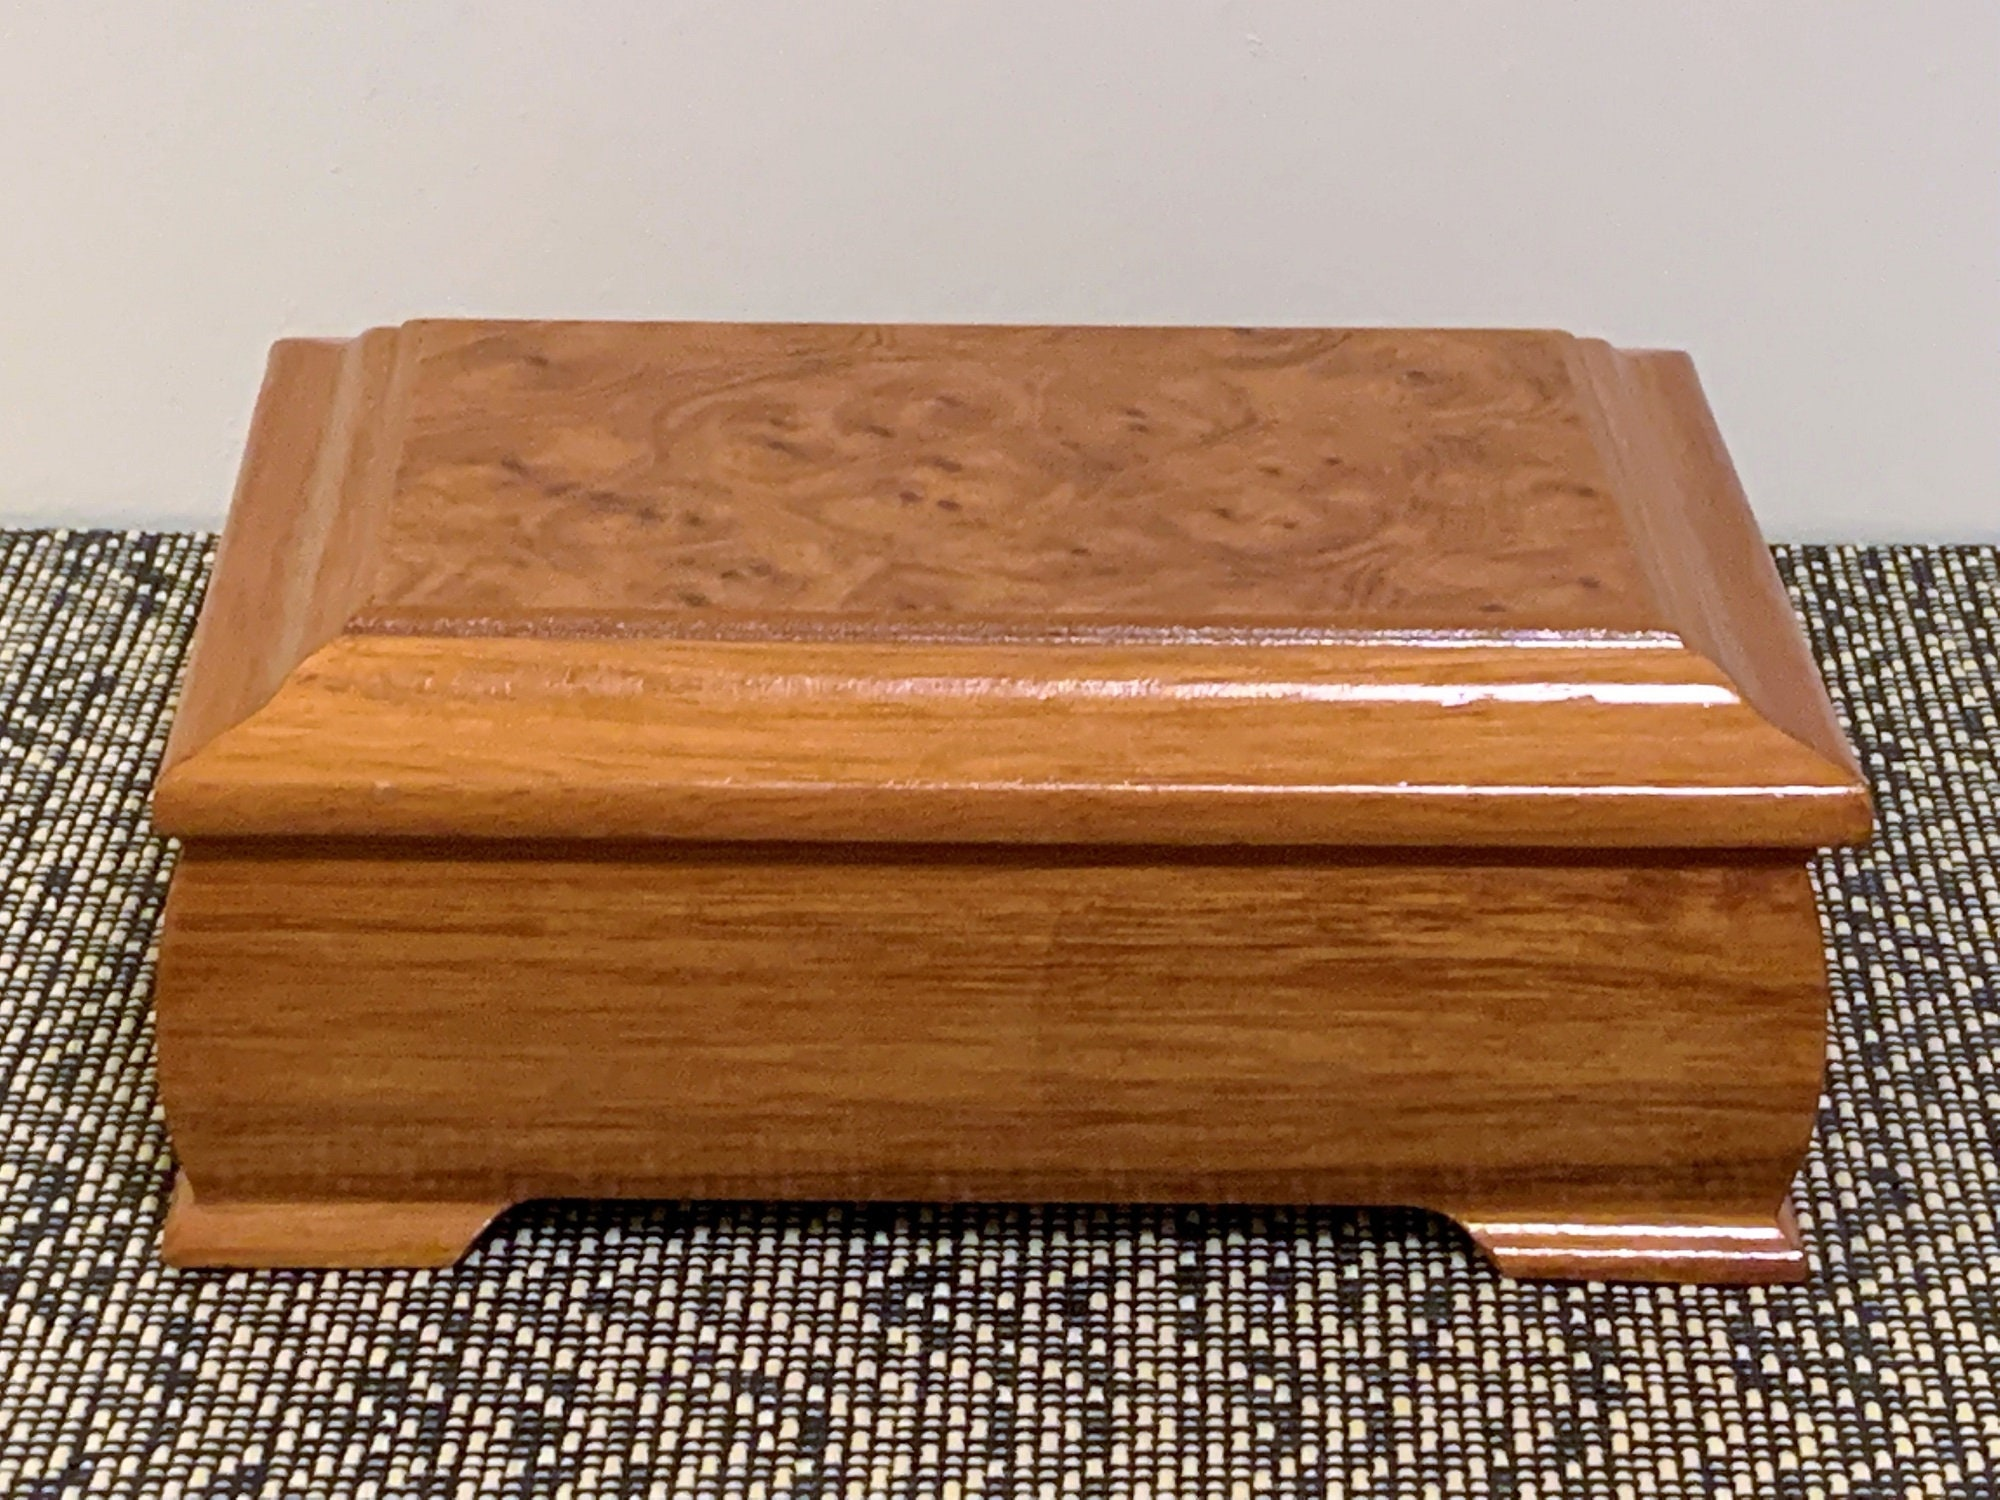 7e3f54440 Vintage Solid Wood Small Jewelry Box - Organizer, Formica Cherry Birch  Laminate finish, Padded Compartments, 8